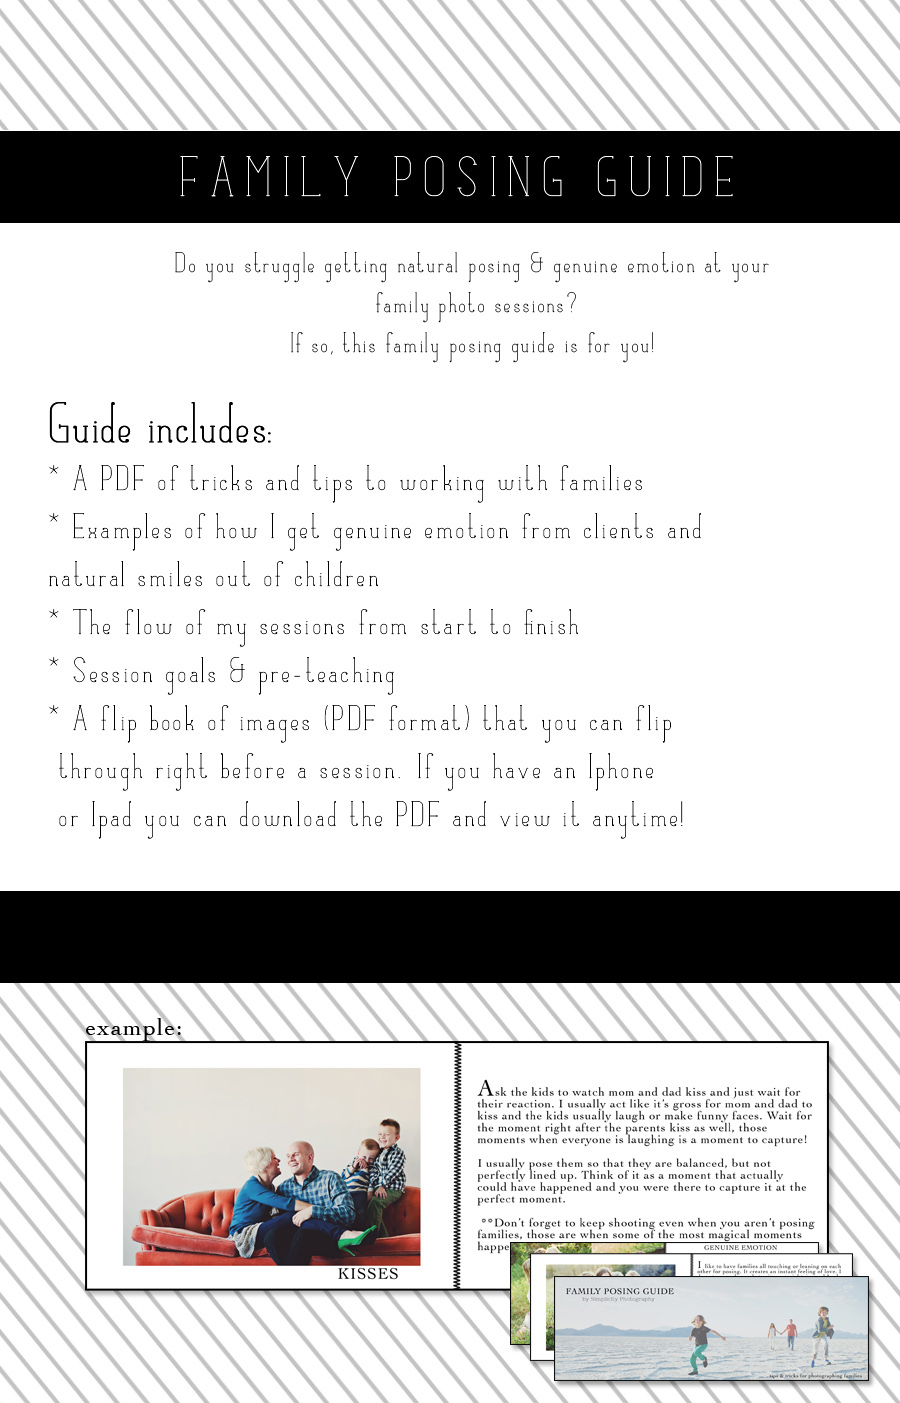 Posing-Guide Contest For A Family Posing Guide + 3 Keys for Successful Family Portrait Sessions Contests Photography Tips